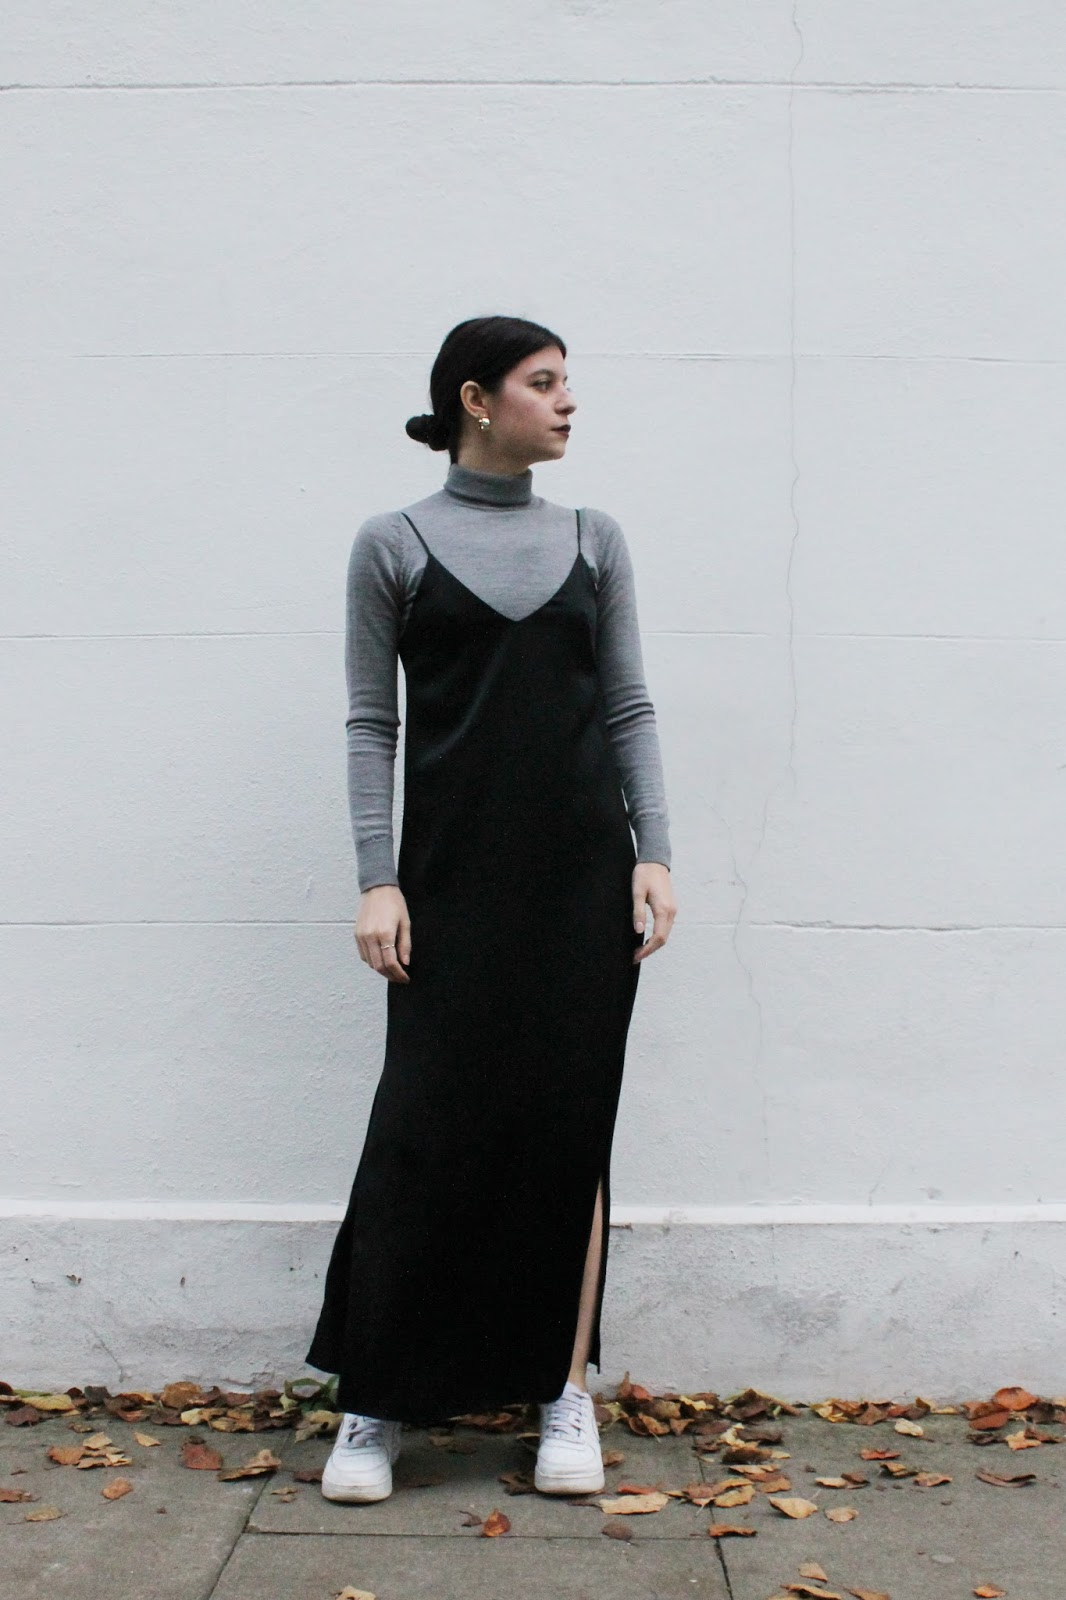 slip dress, turtleneck sweater, layering, monochrome, fall outfit, fashion blogger, london blogger, microinfluencer